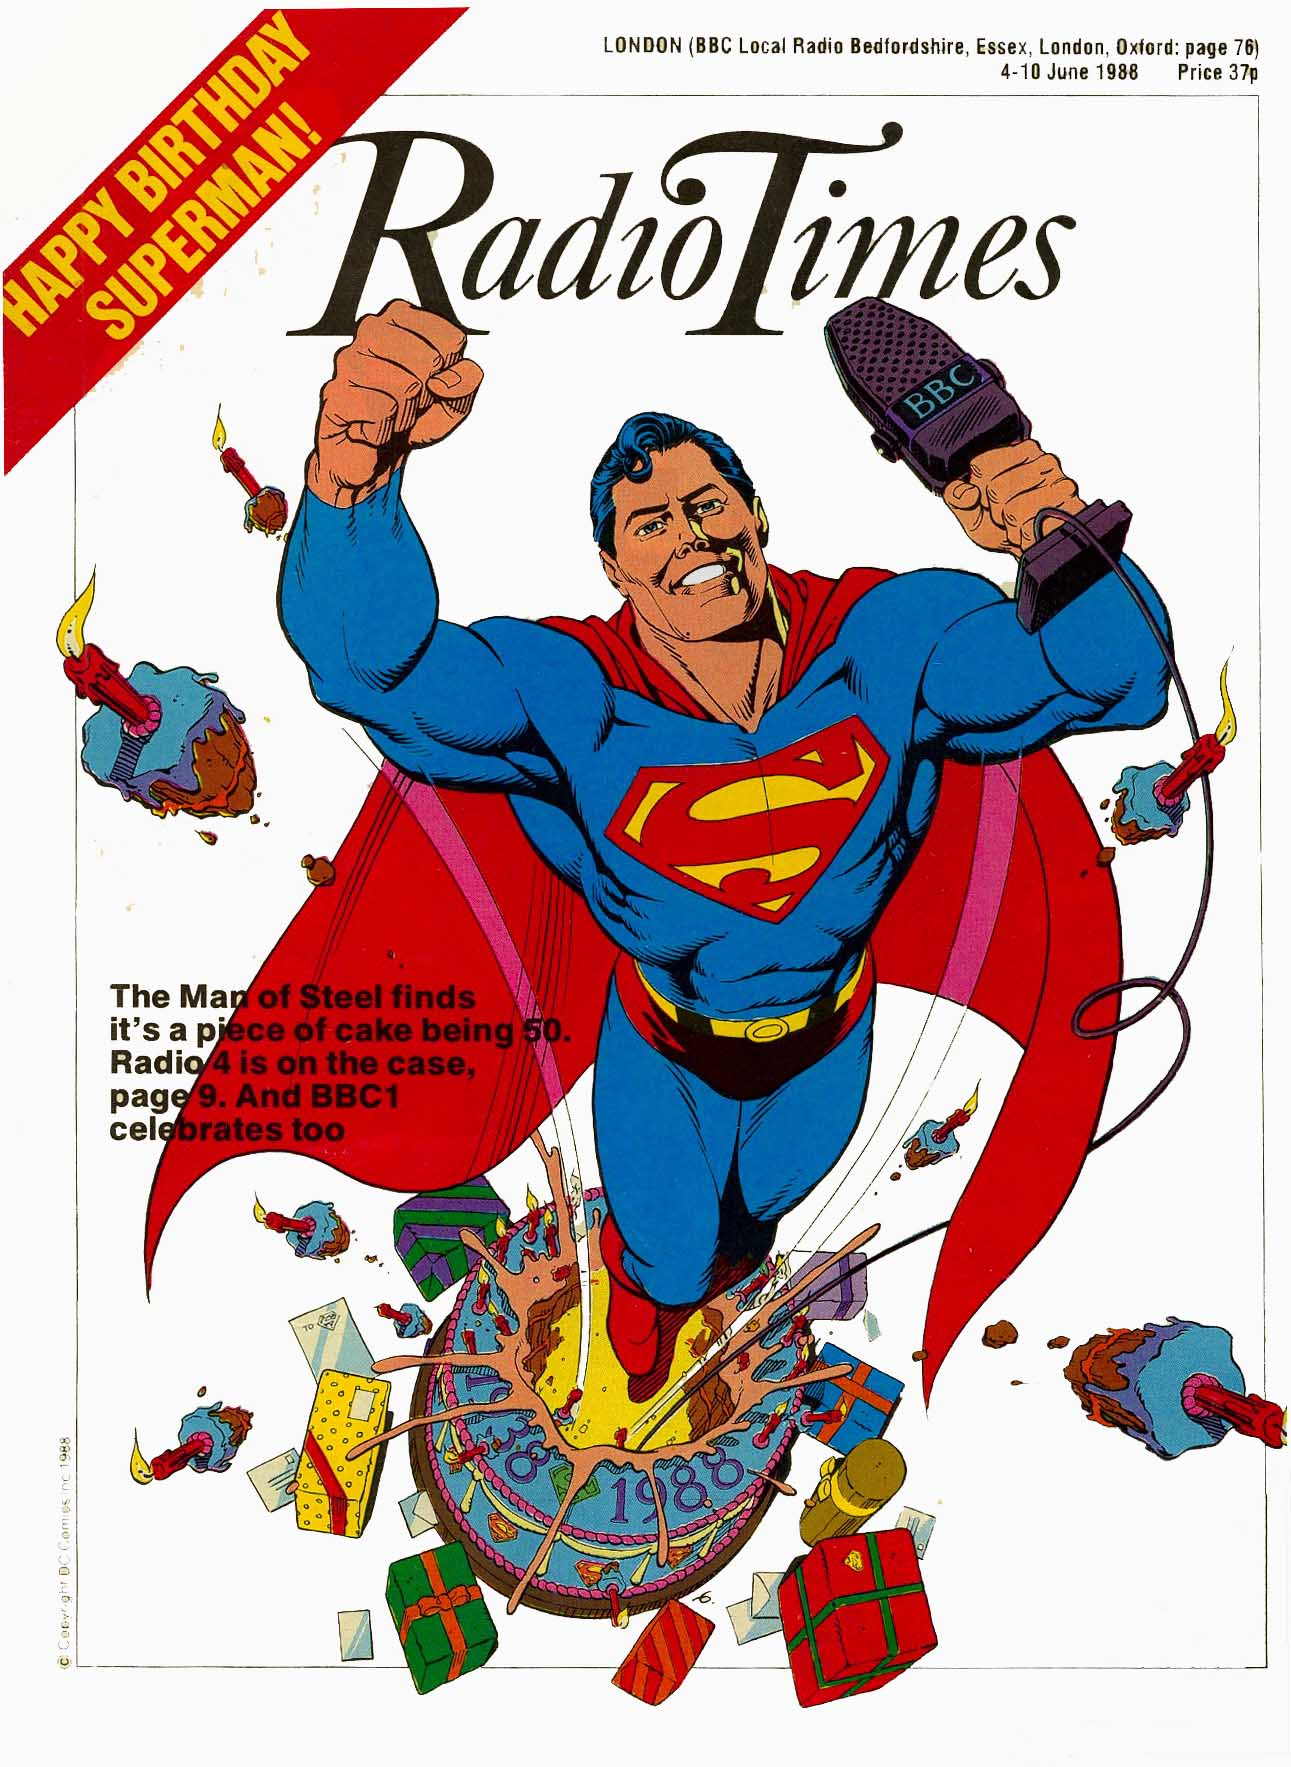 Radio Times cover by dave gibbons celebrating superman's 50th birthday in 1988